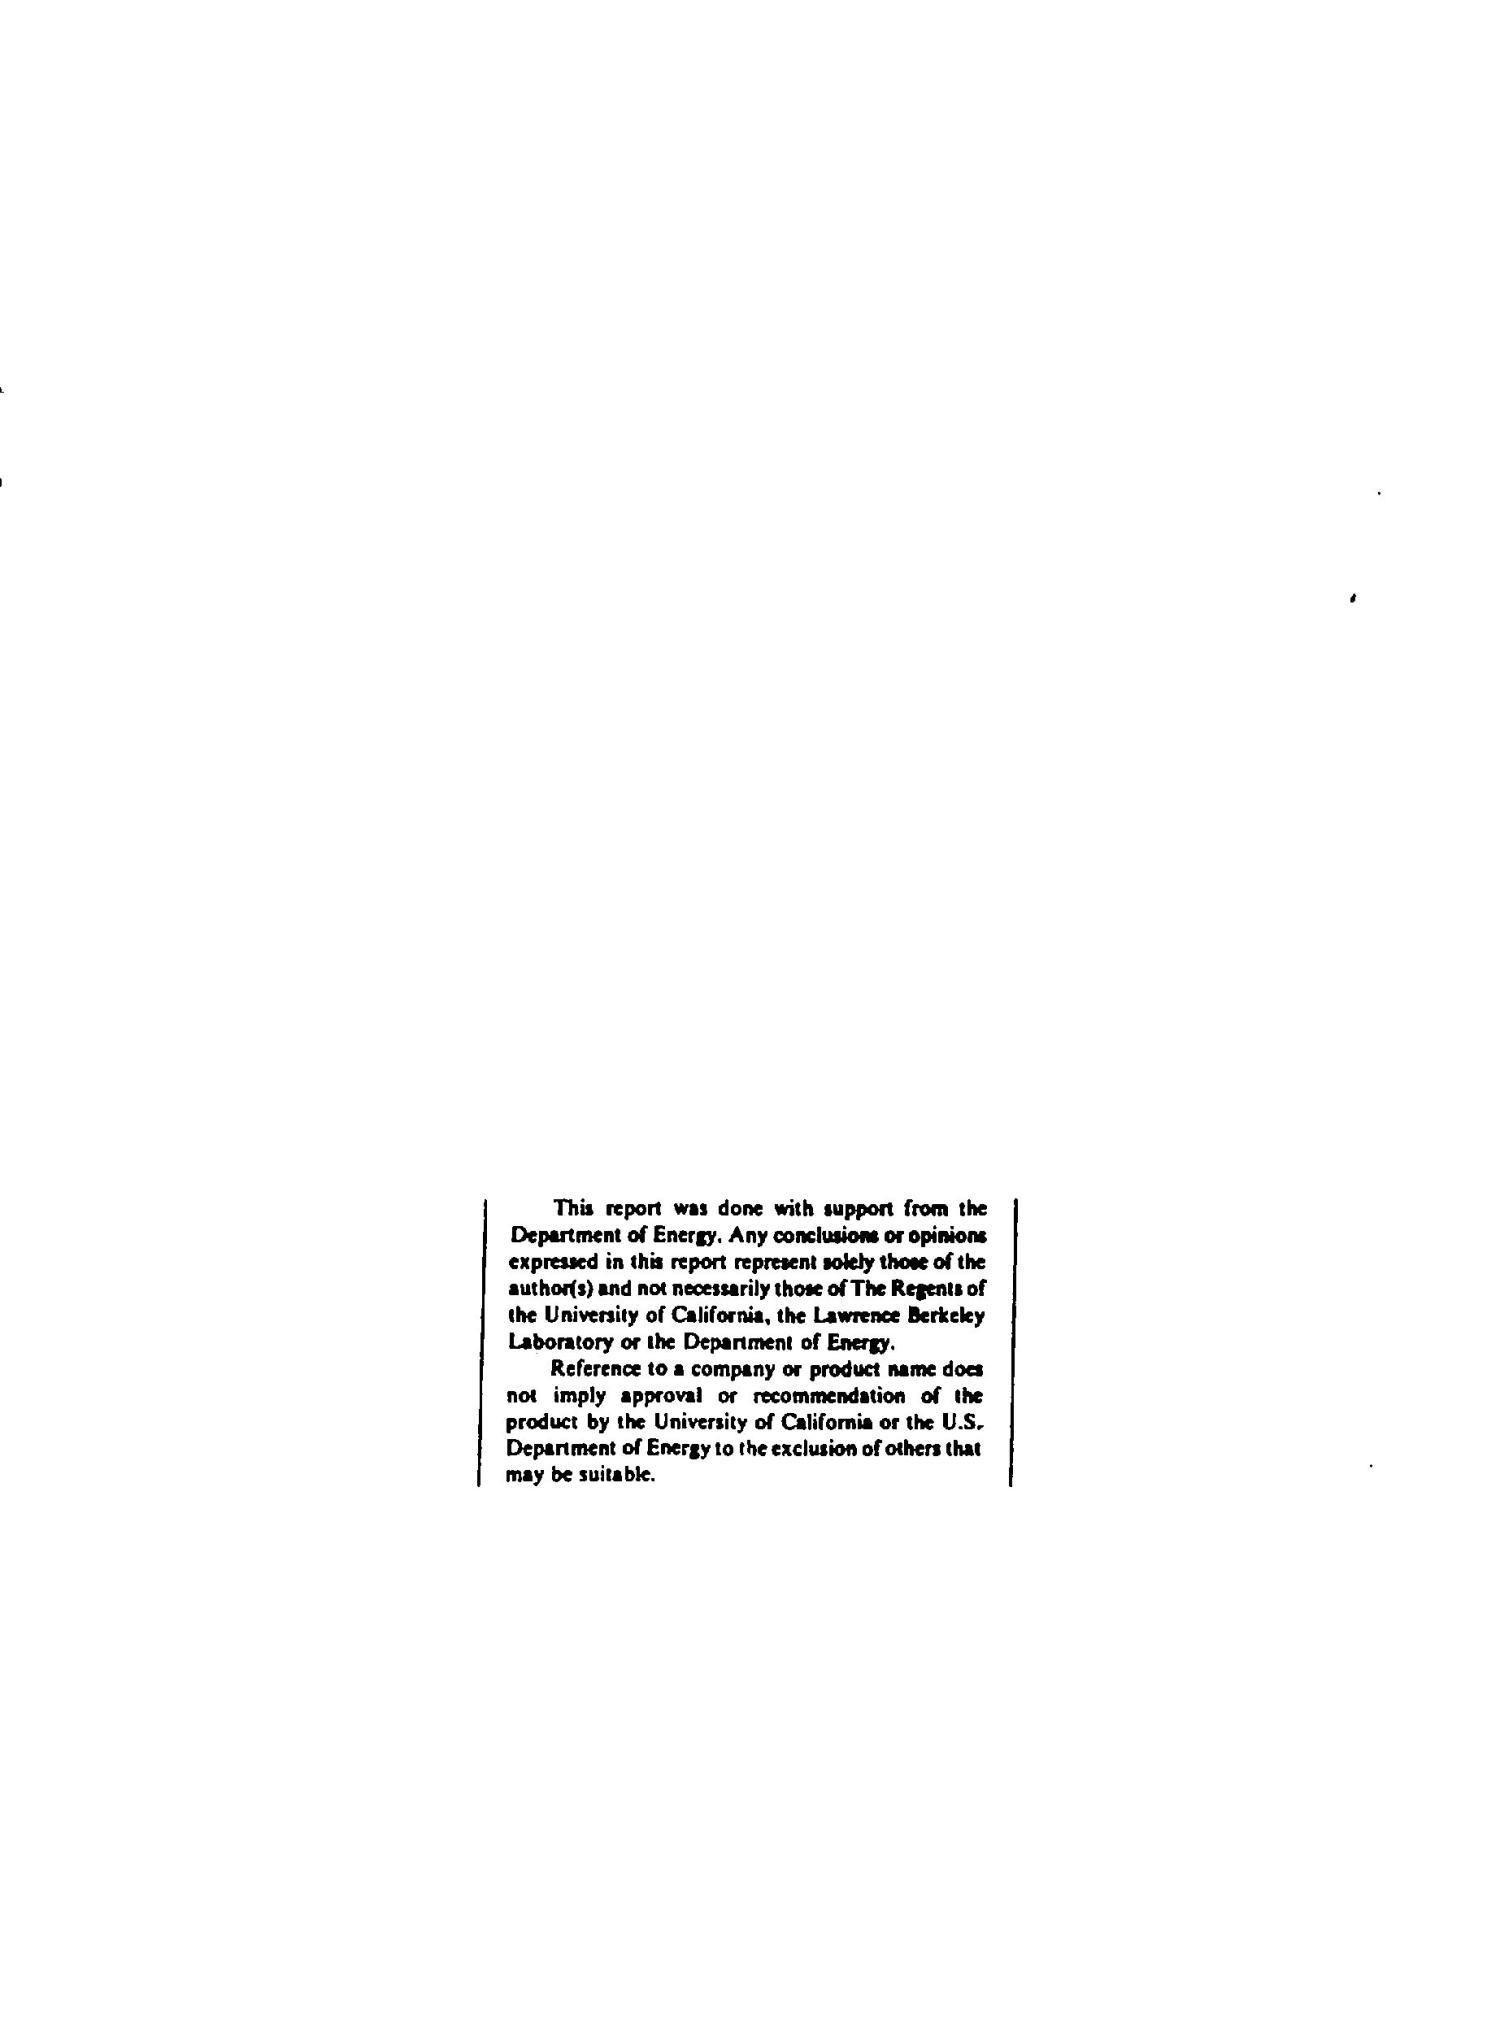 Chemical Biodynamics Division: Annual report, October 1, 1986-September 30, 1987                                                                                                      [Sequence #]: 2 of 69